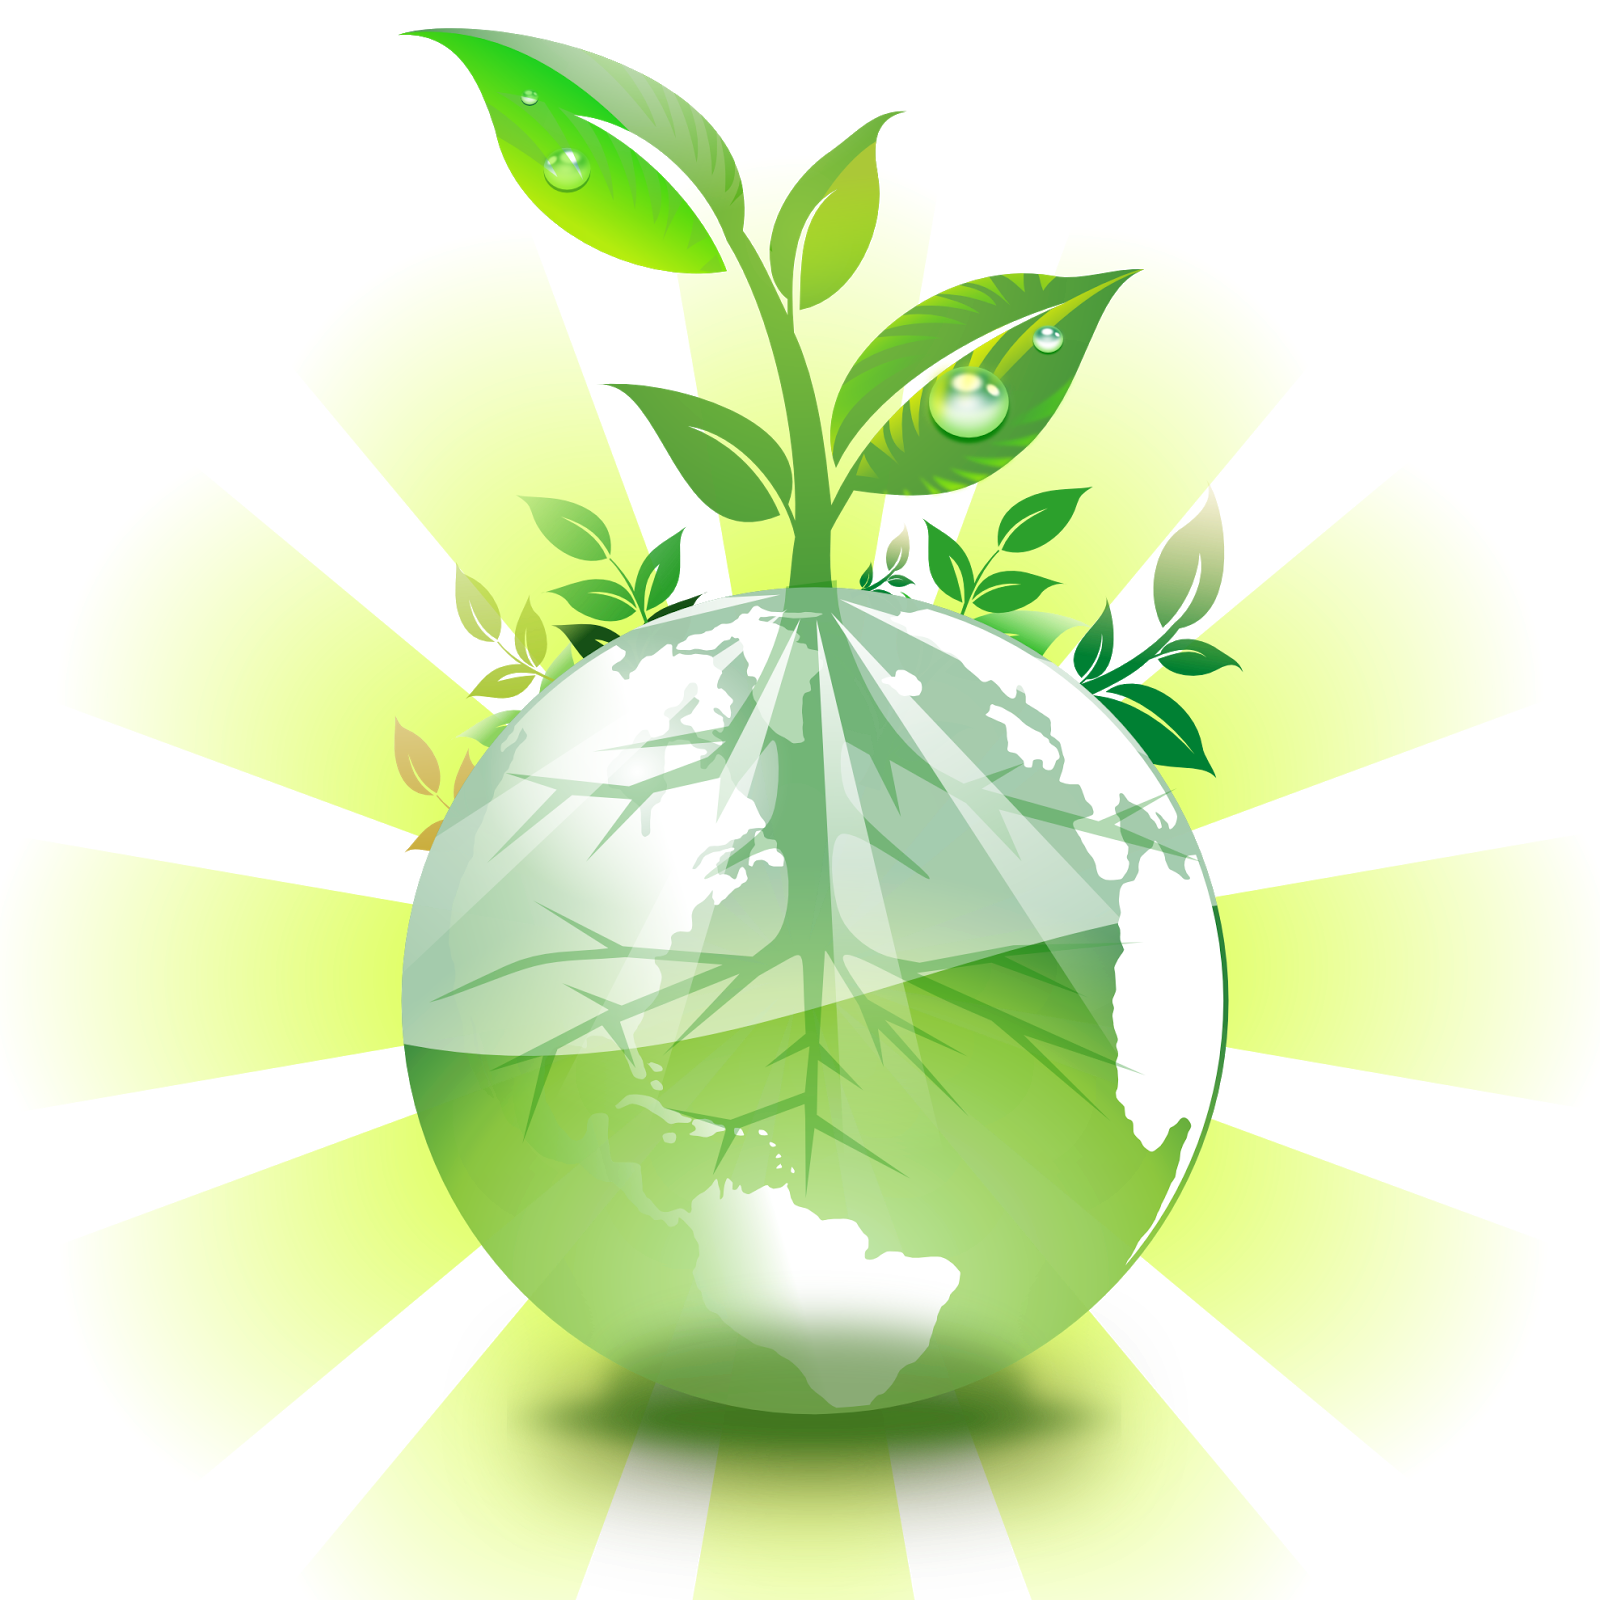 briquetting plant is the green and eco friendly technology